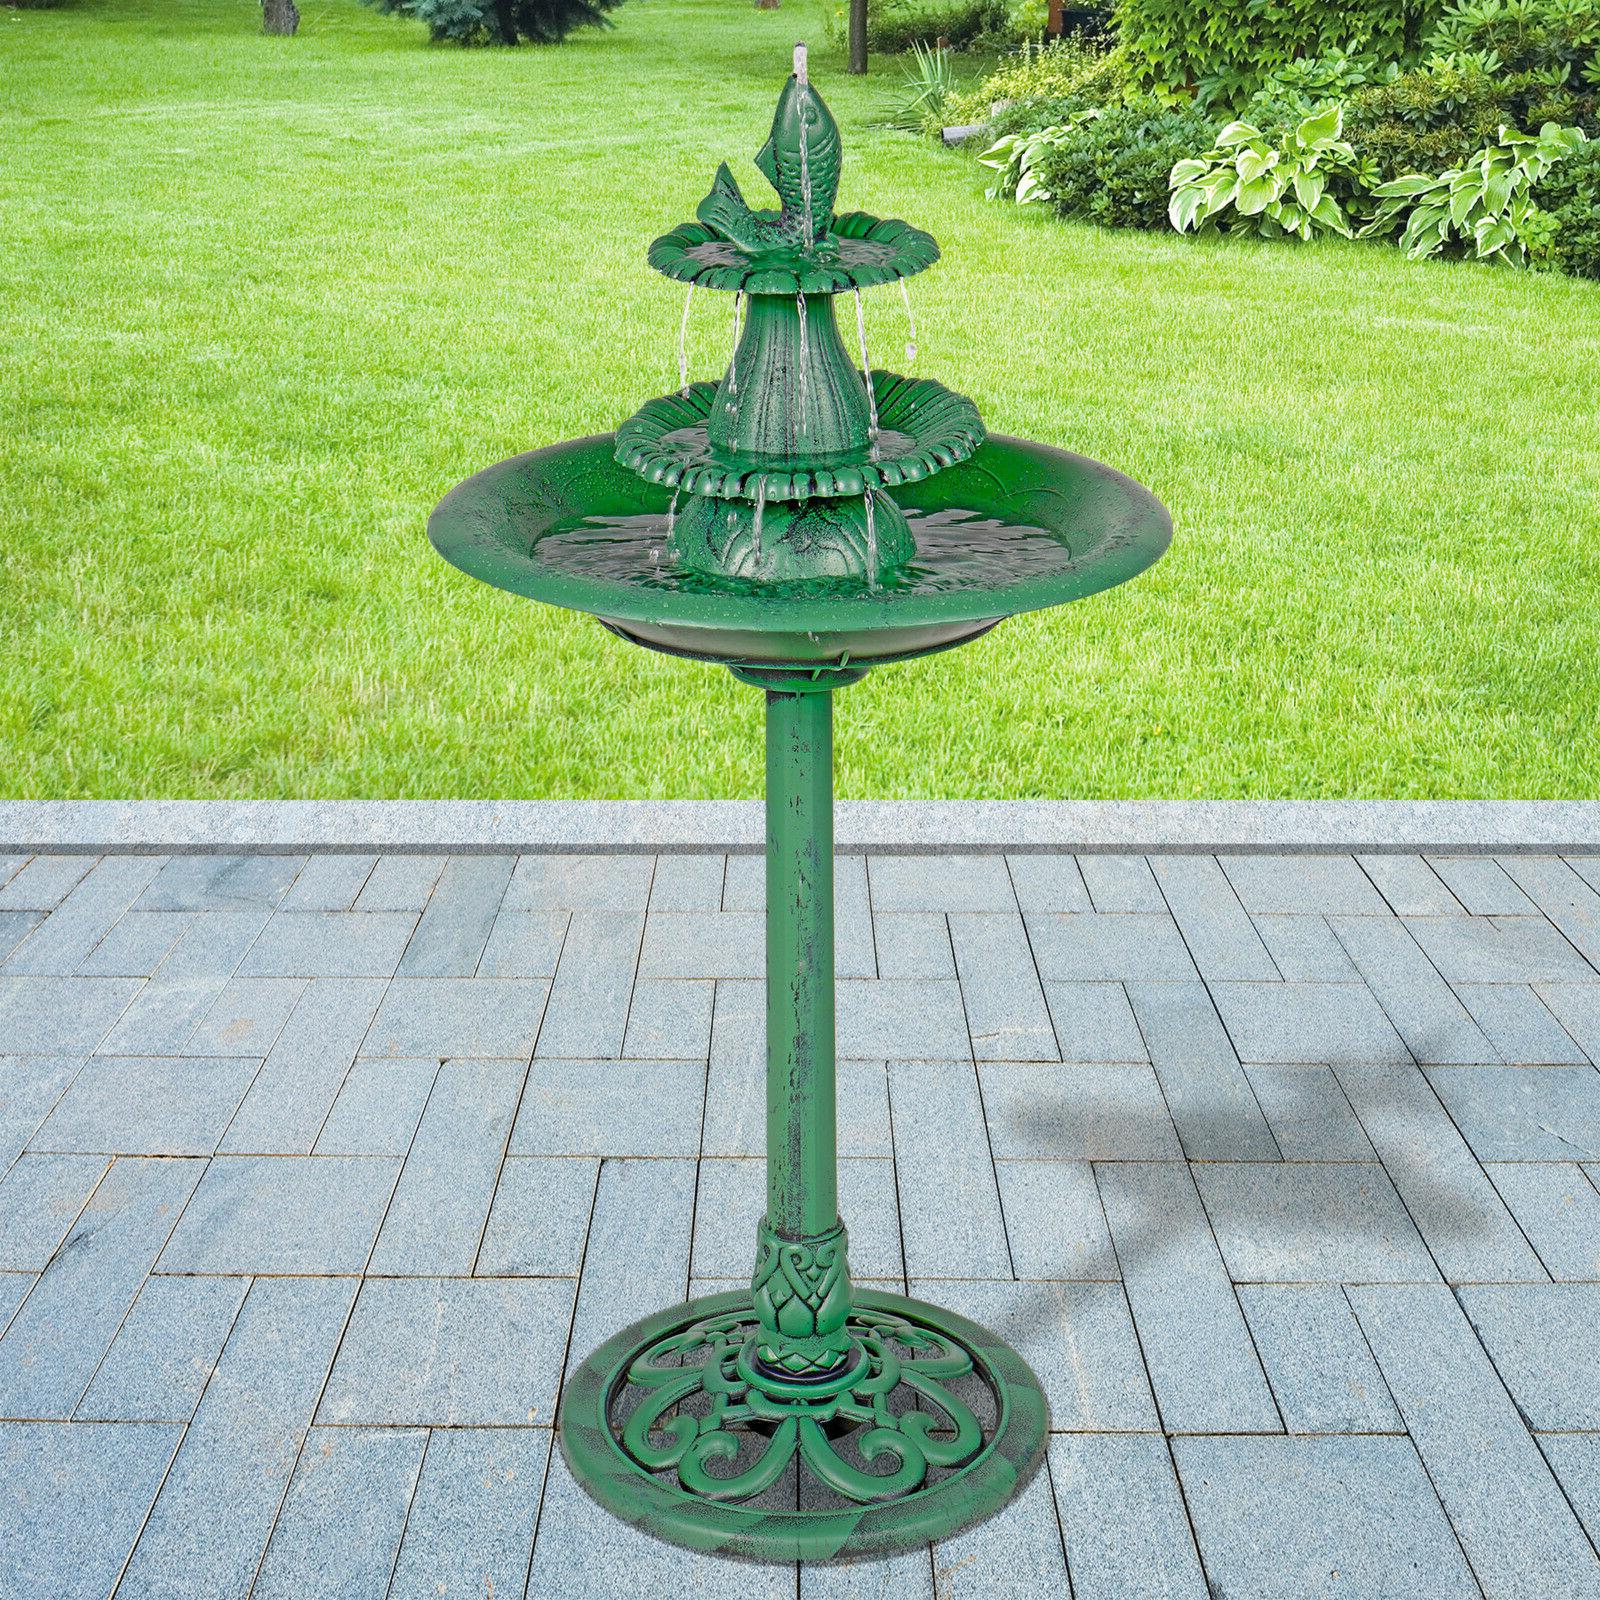 Alpine Corporation Pedestal Fountain and Bird with